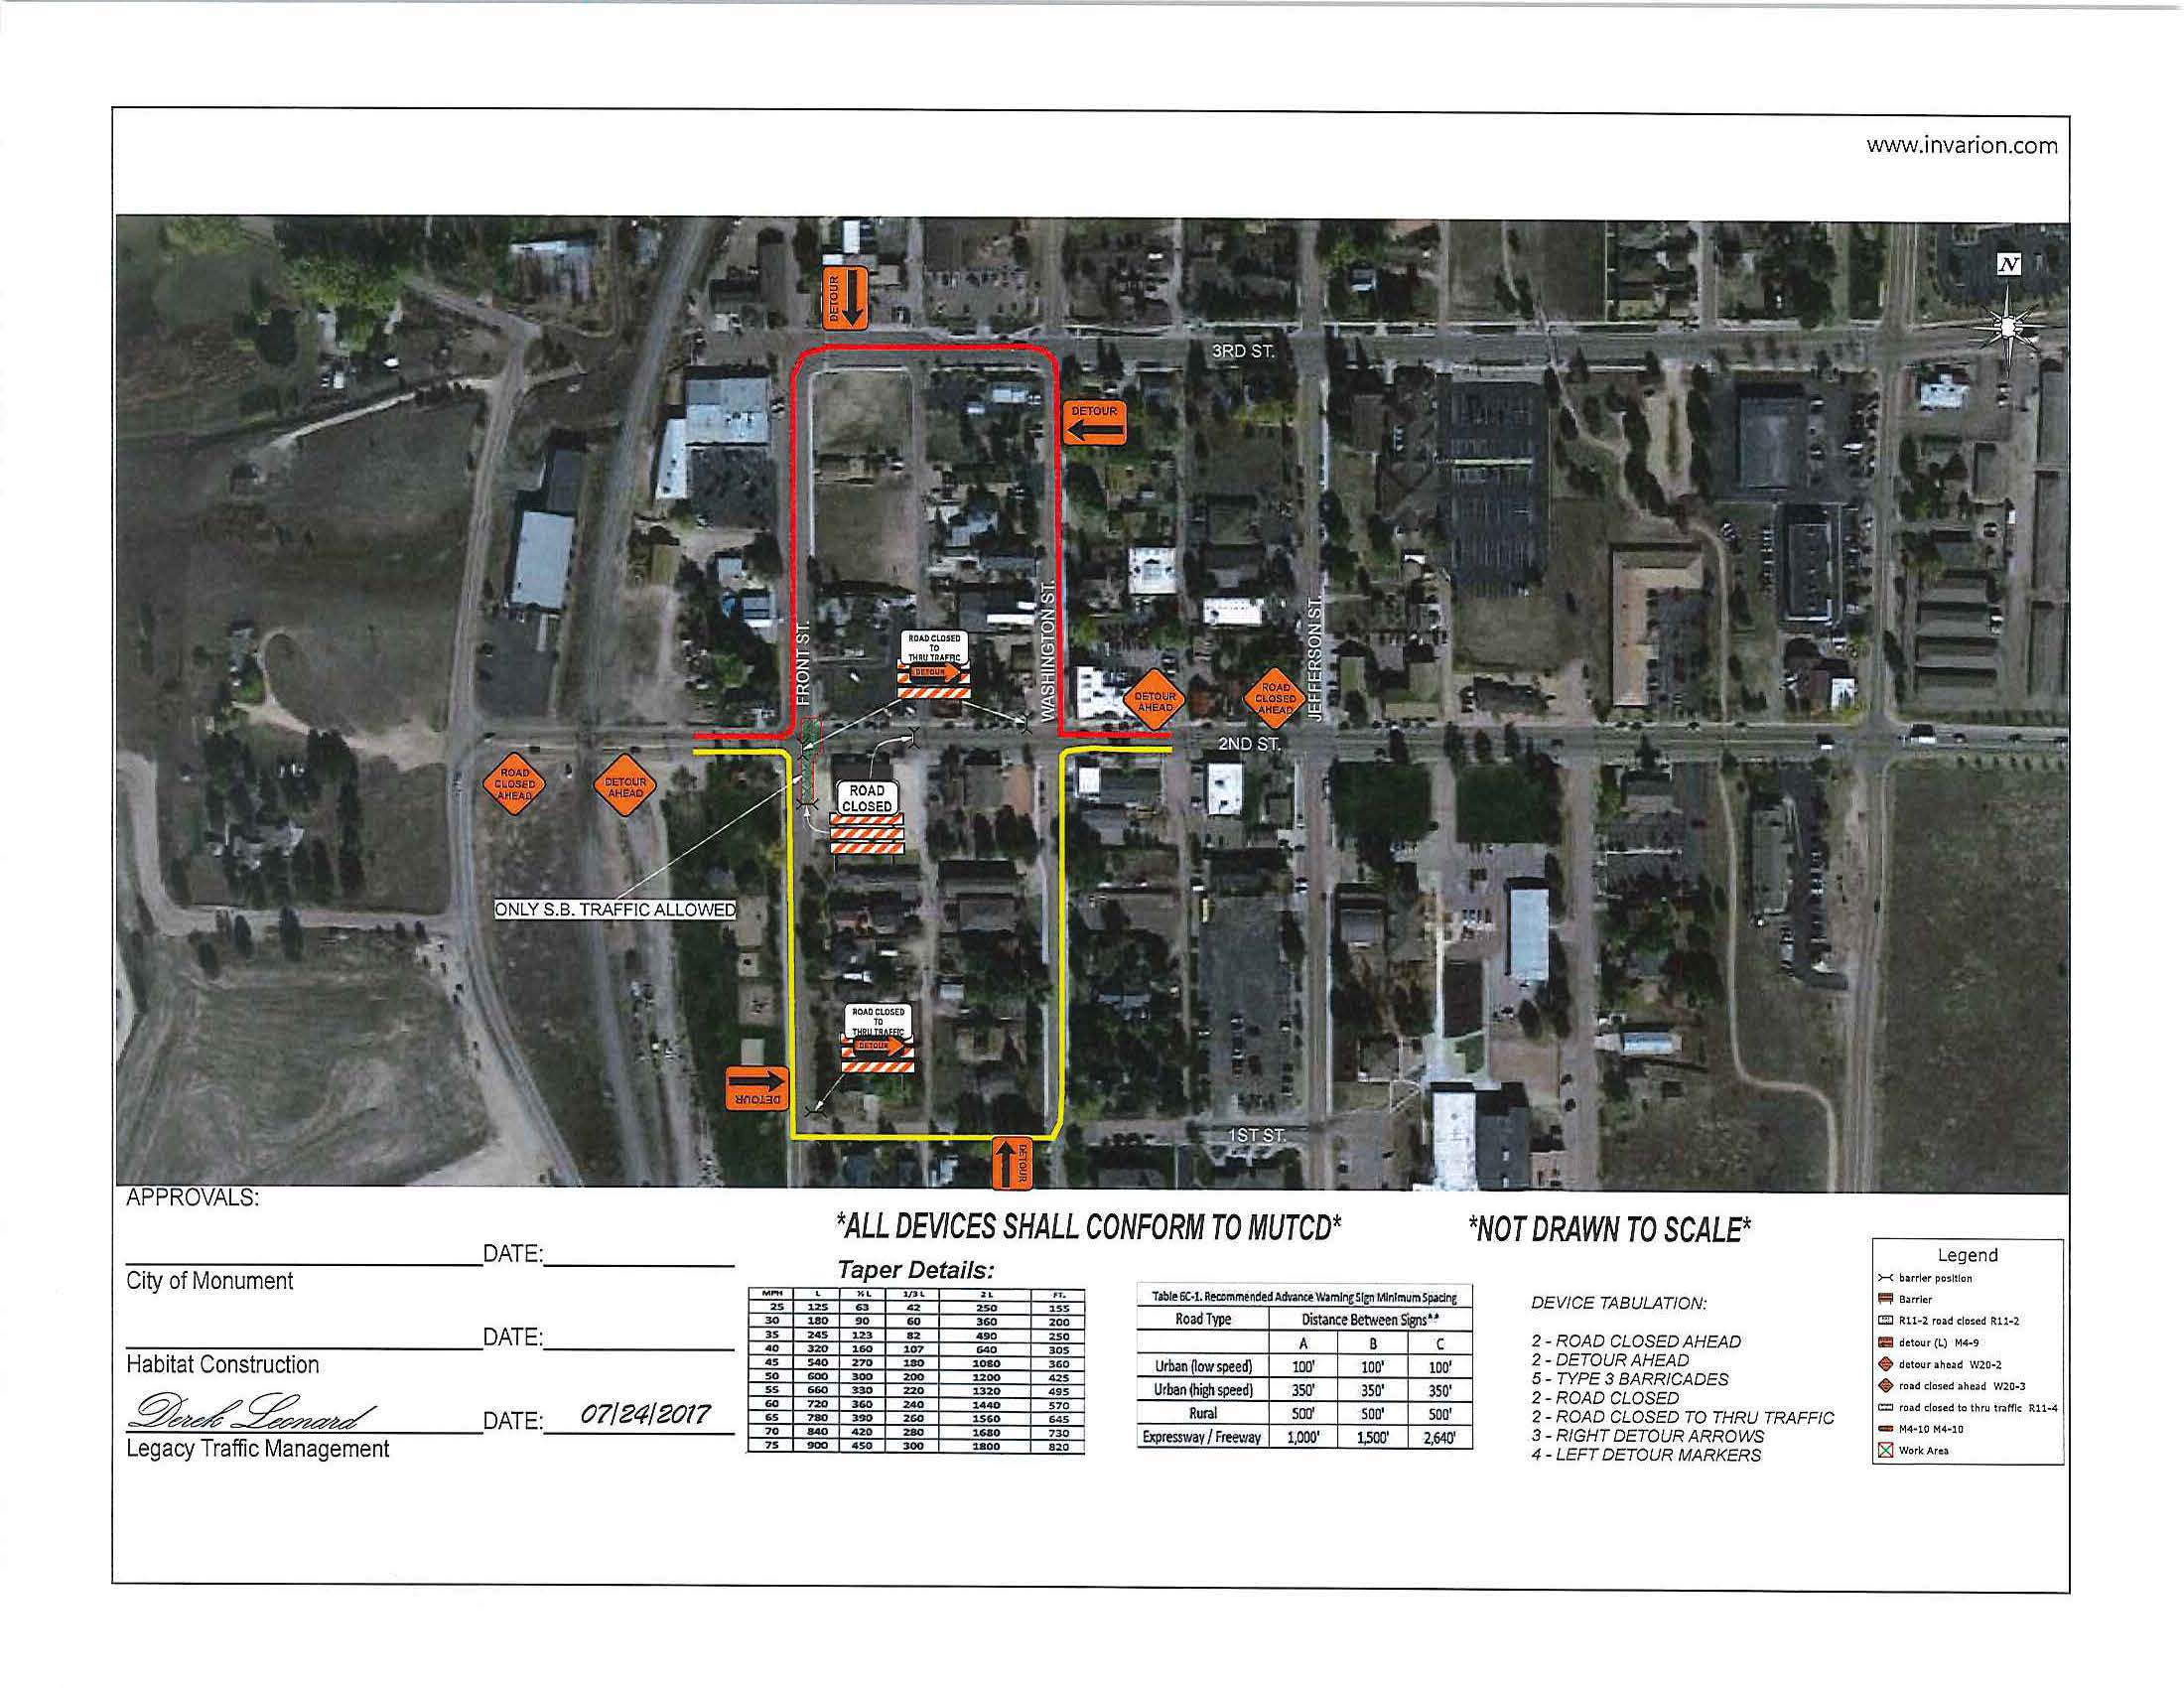 Traffic Control Plan Phase 1